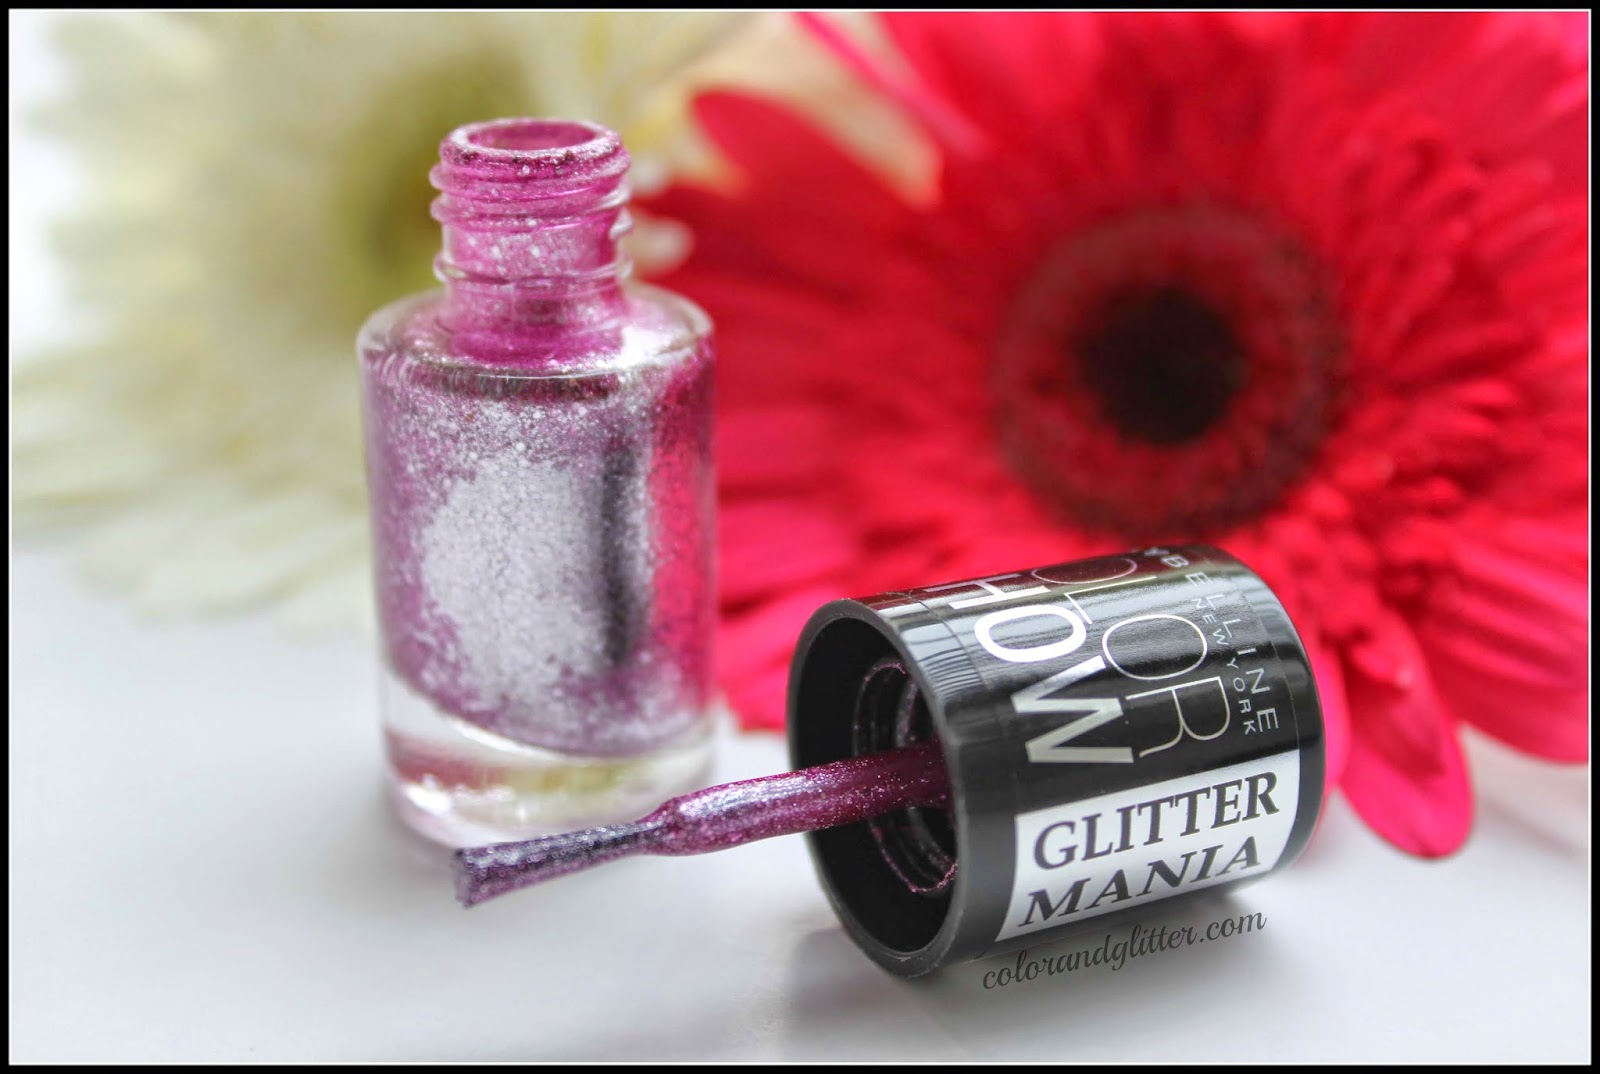 Maybelline Color Show Glitter Mania Nail Polish in Matinee Mauve || Review and Swatches